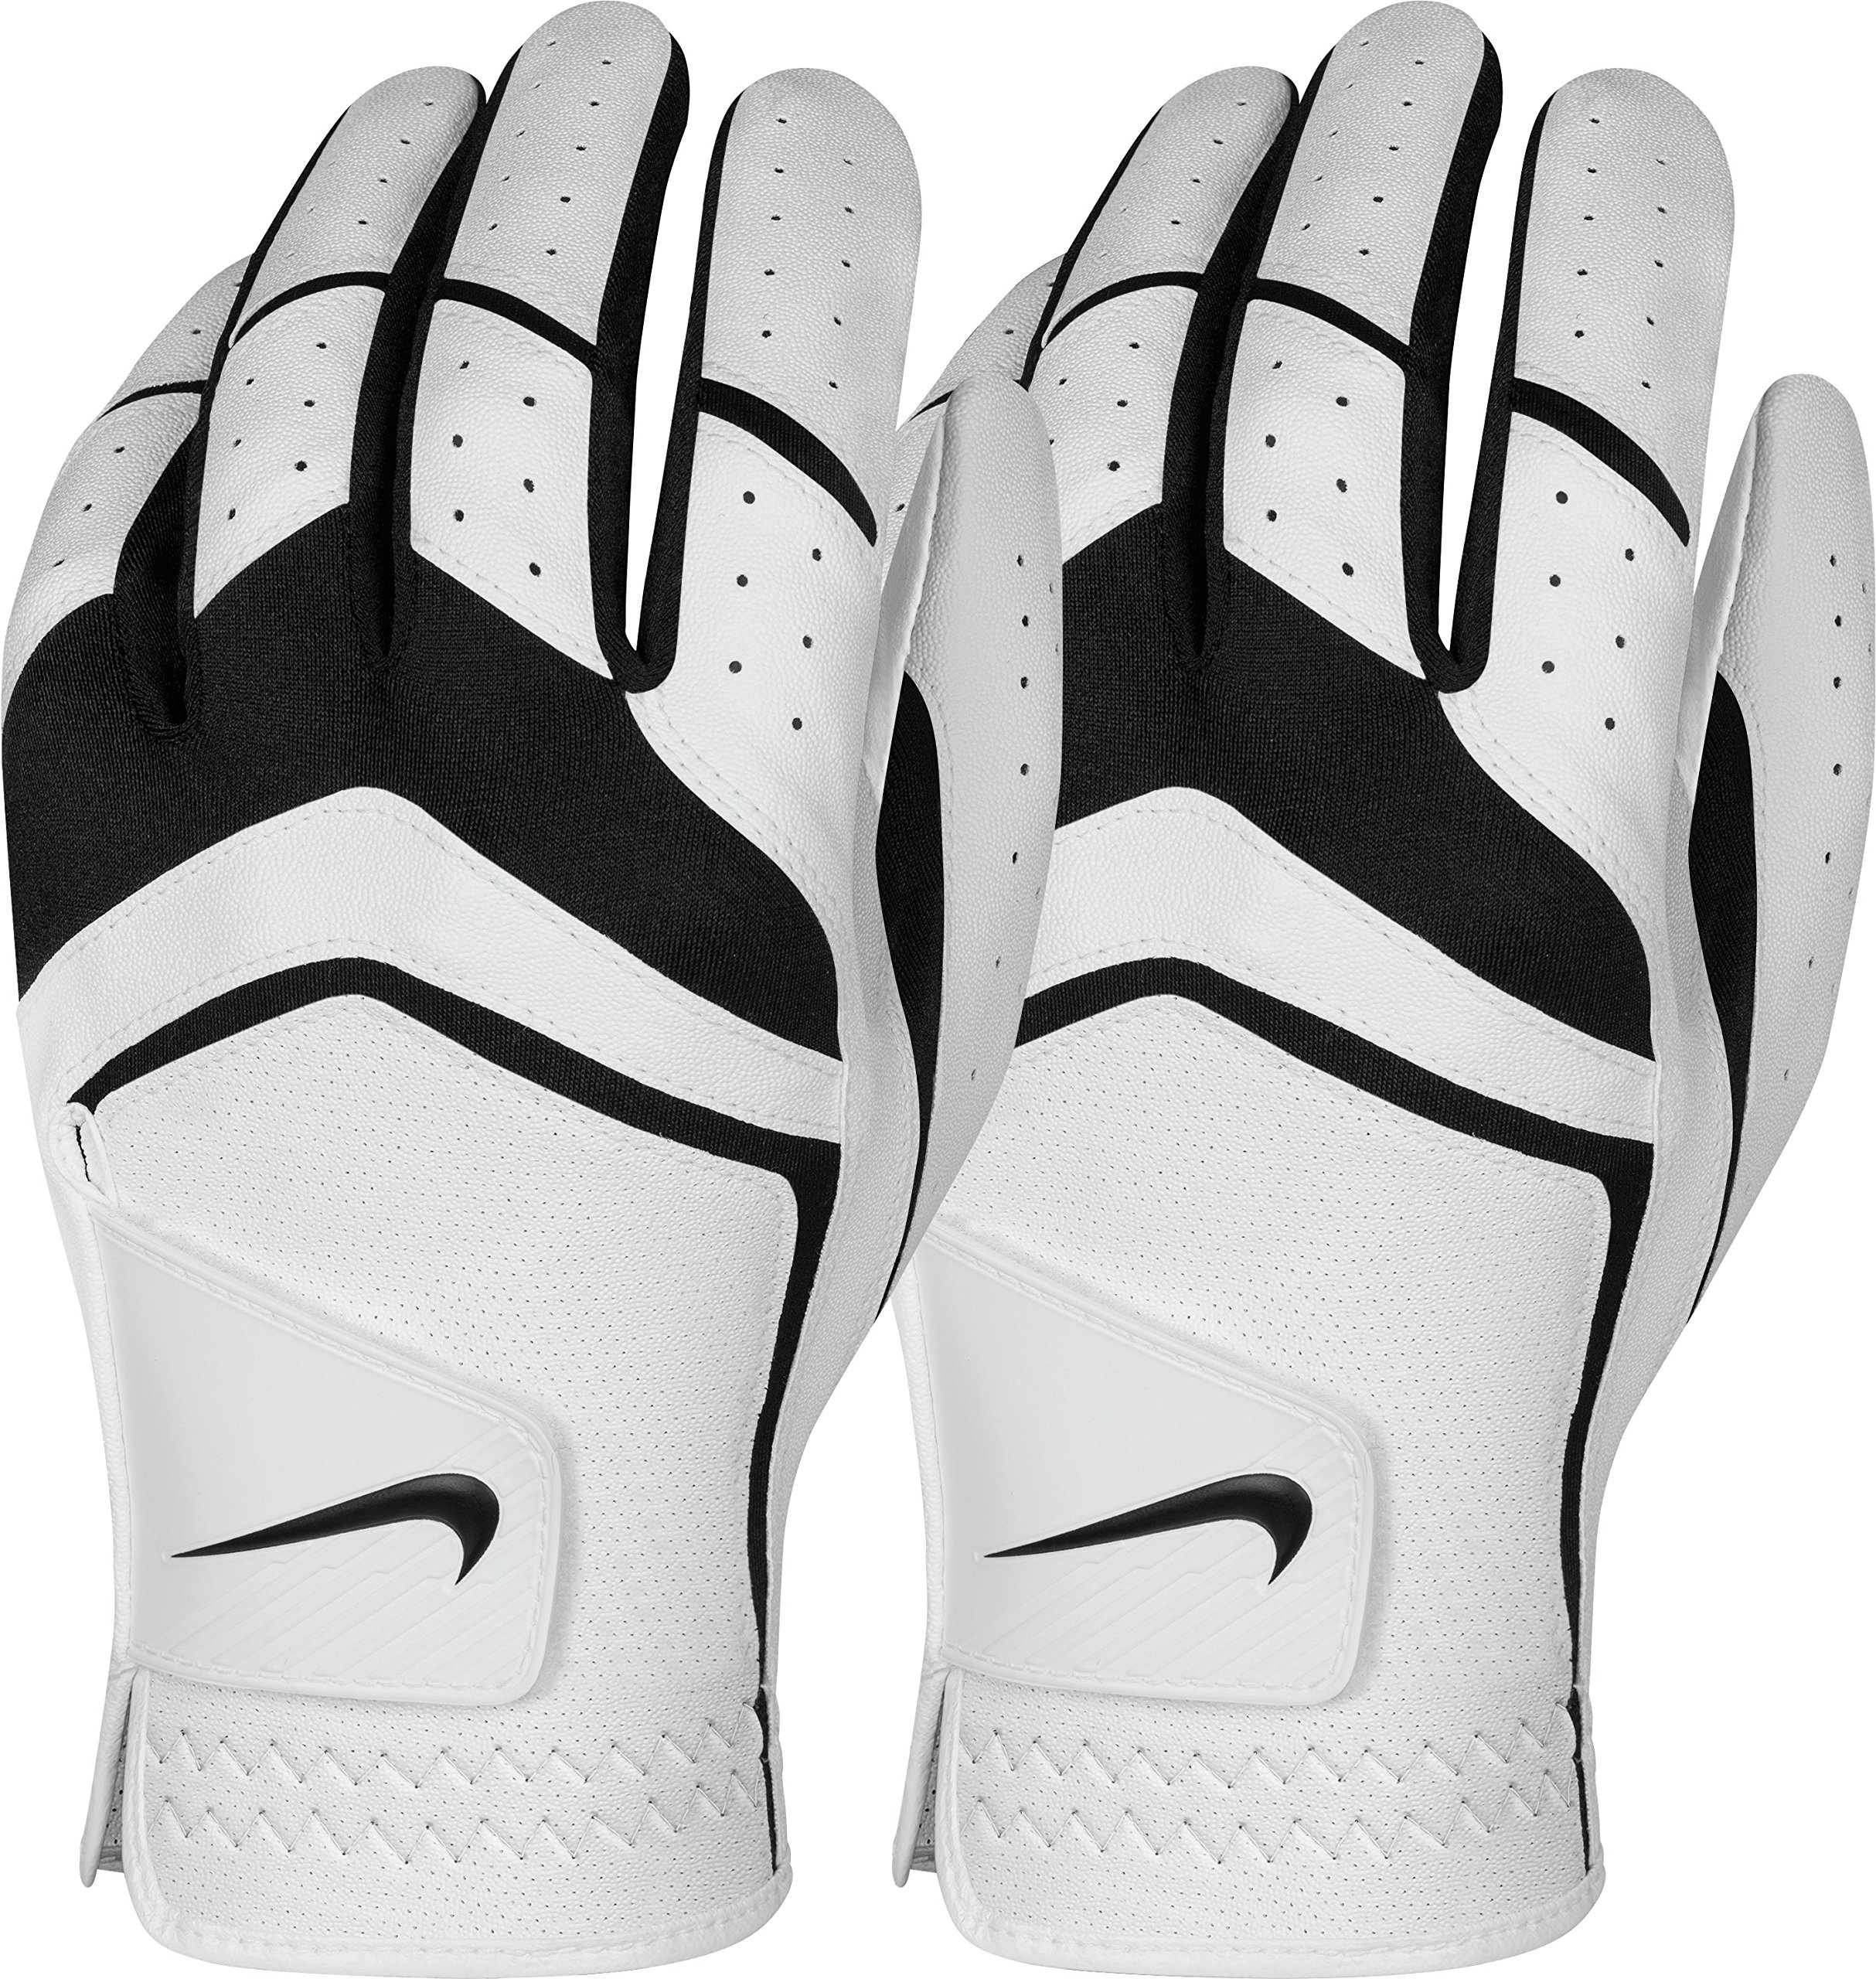 Nike Men's Dura Feel Golf Glove (2-Pack) (White), Large, Left Hand by Nike